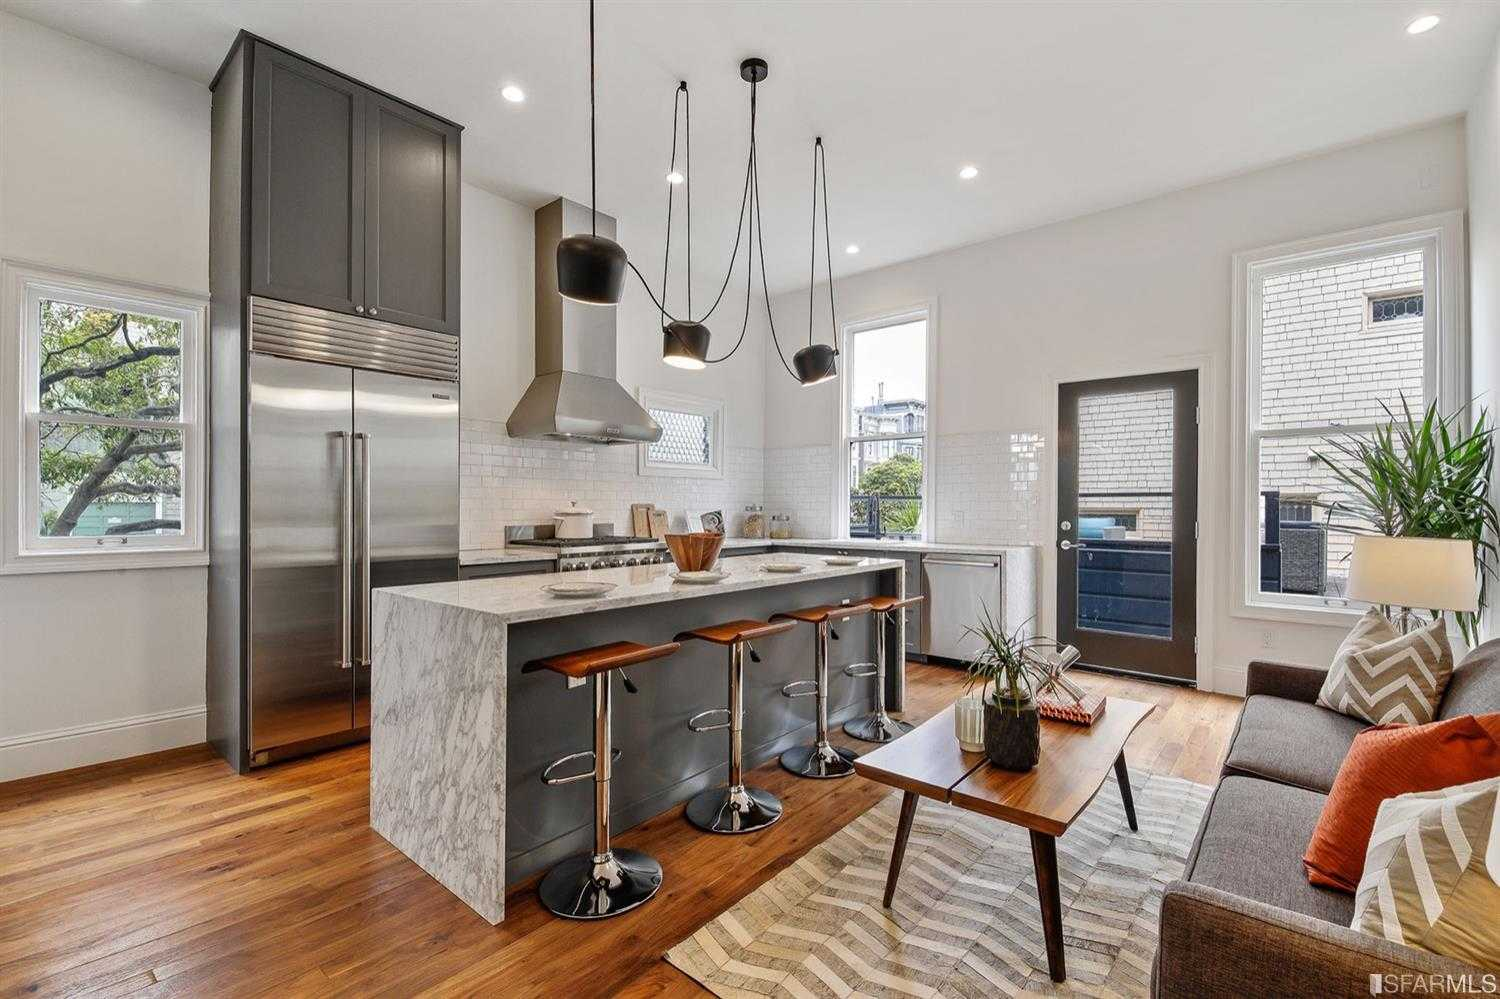 $1,449,000 - 1Br/1Ba -  for Sale in San Francisco